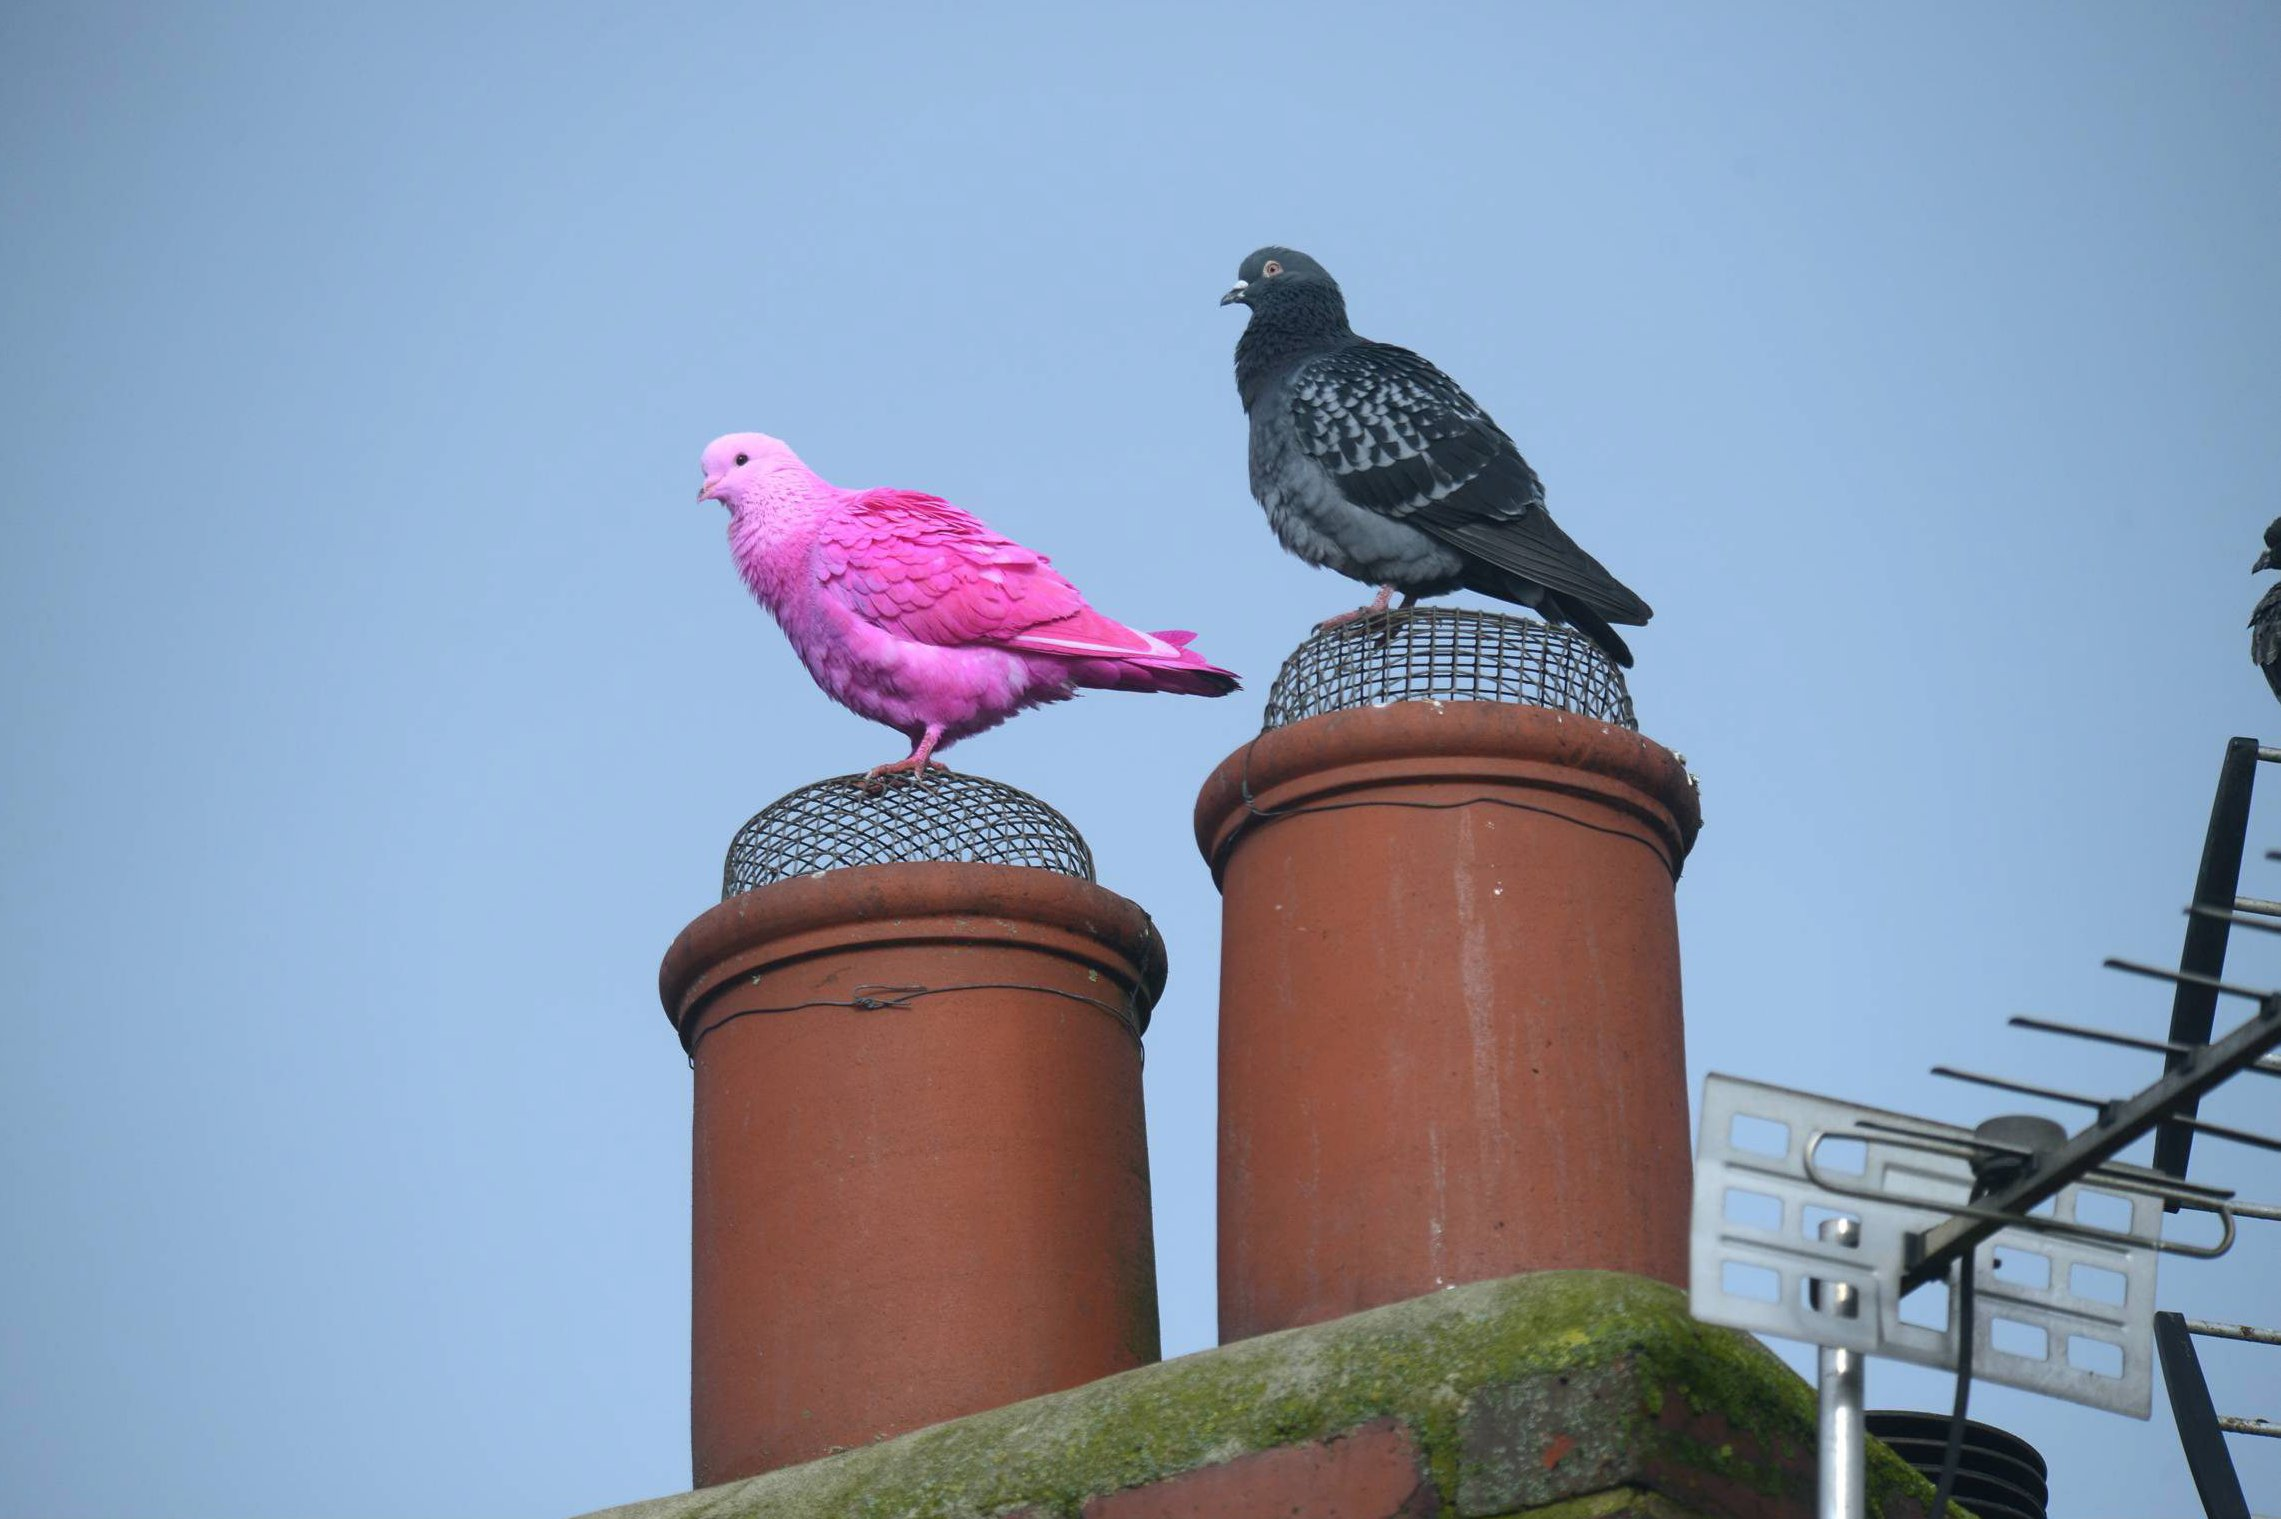 Pink pigeon spotted in skies above Darlington